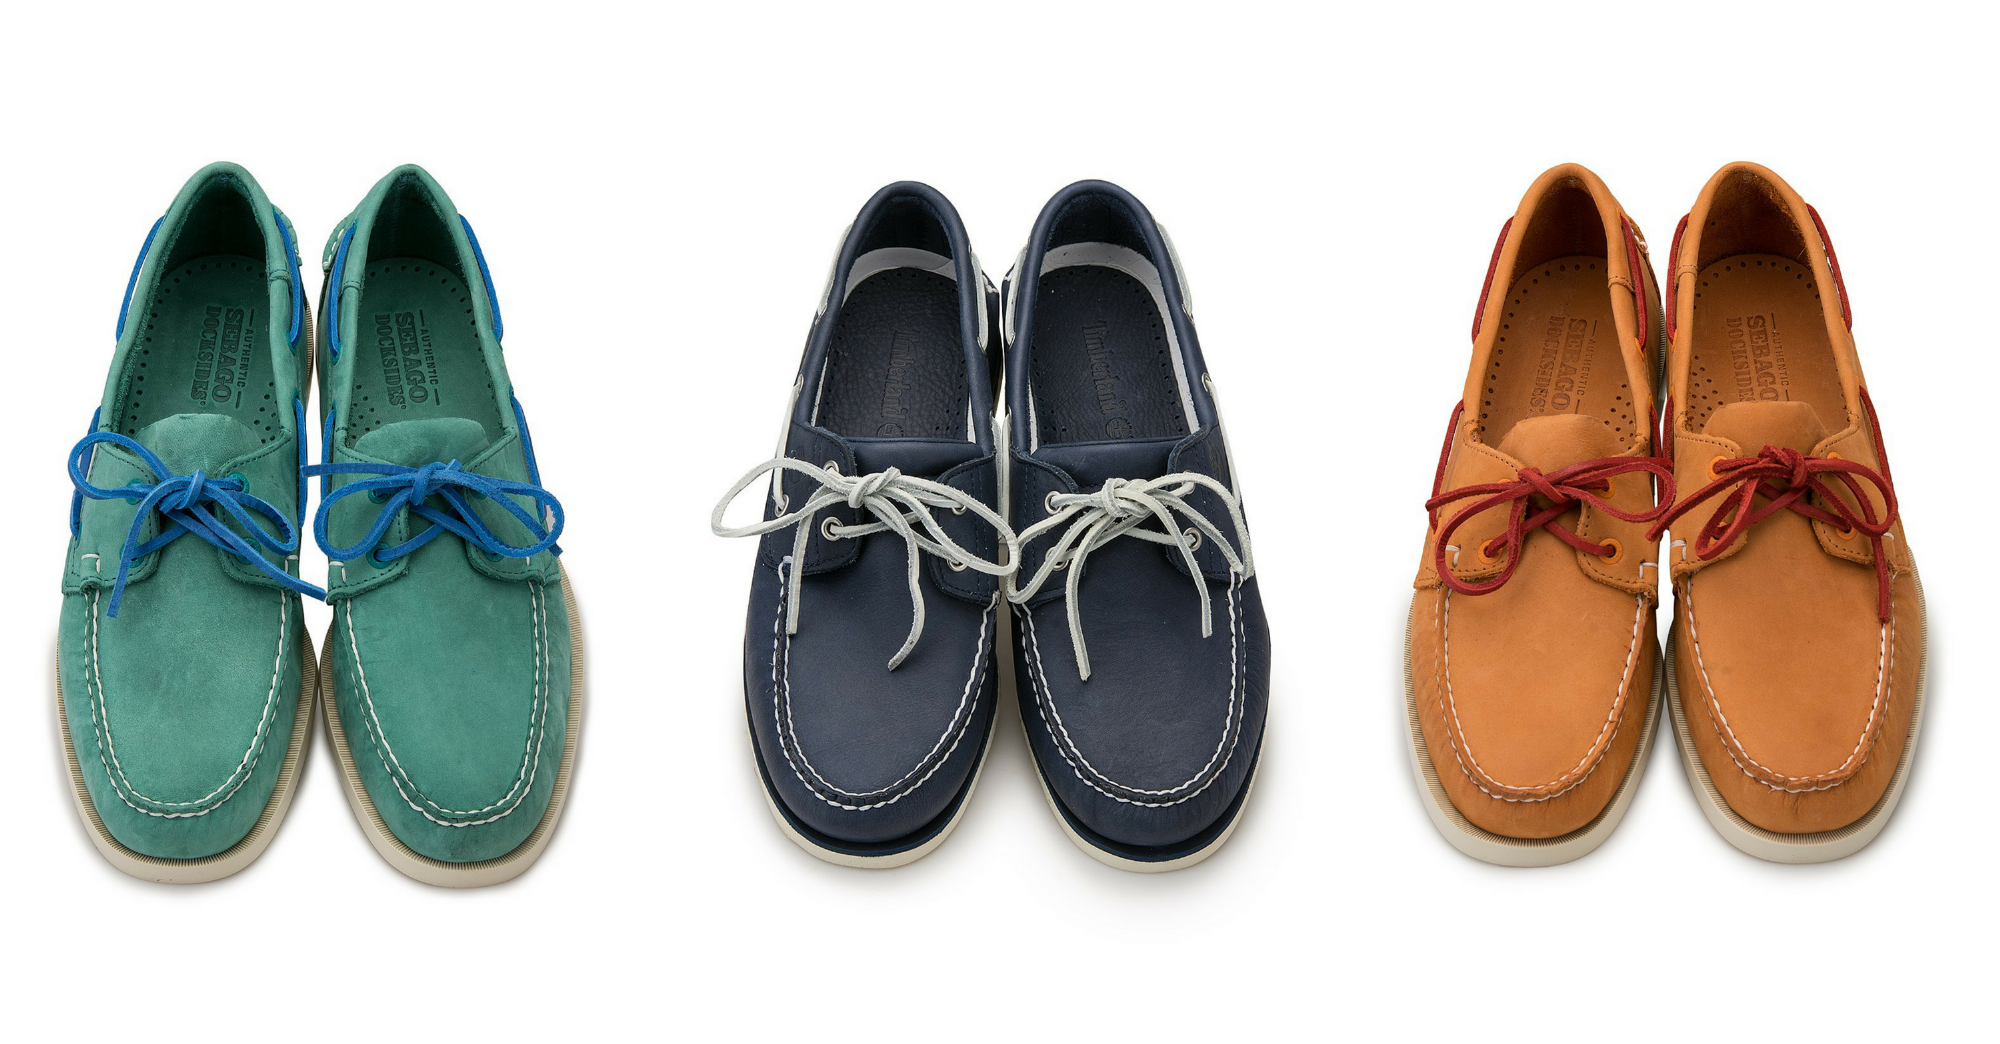 men's boat shoes from sebago and timberland in blue, navy and orange